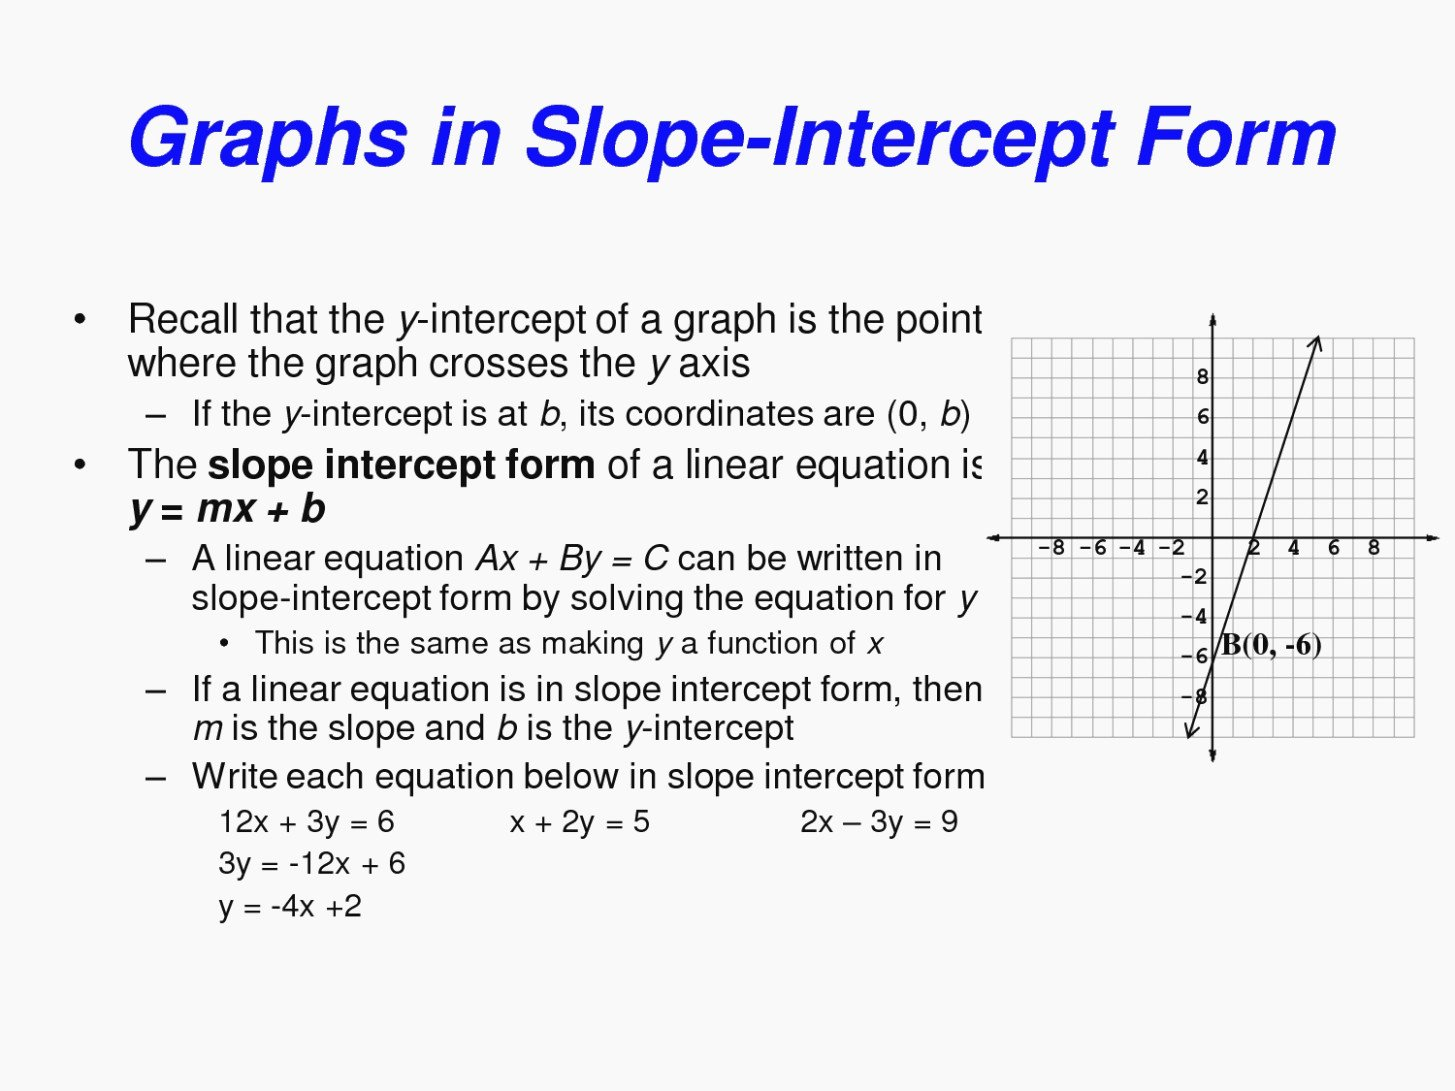 Writing Equations From Graphs Worksheet Luxury 14 Quick Tips for How to